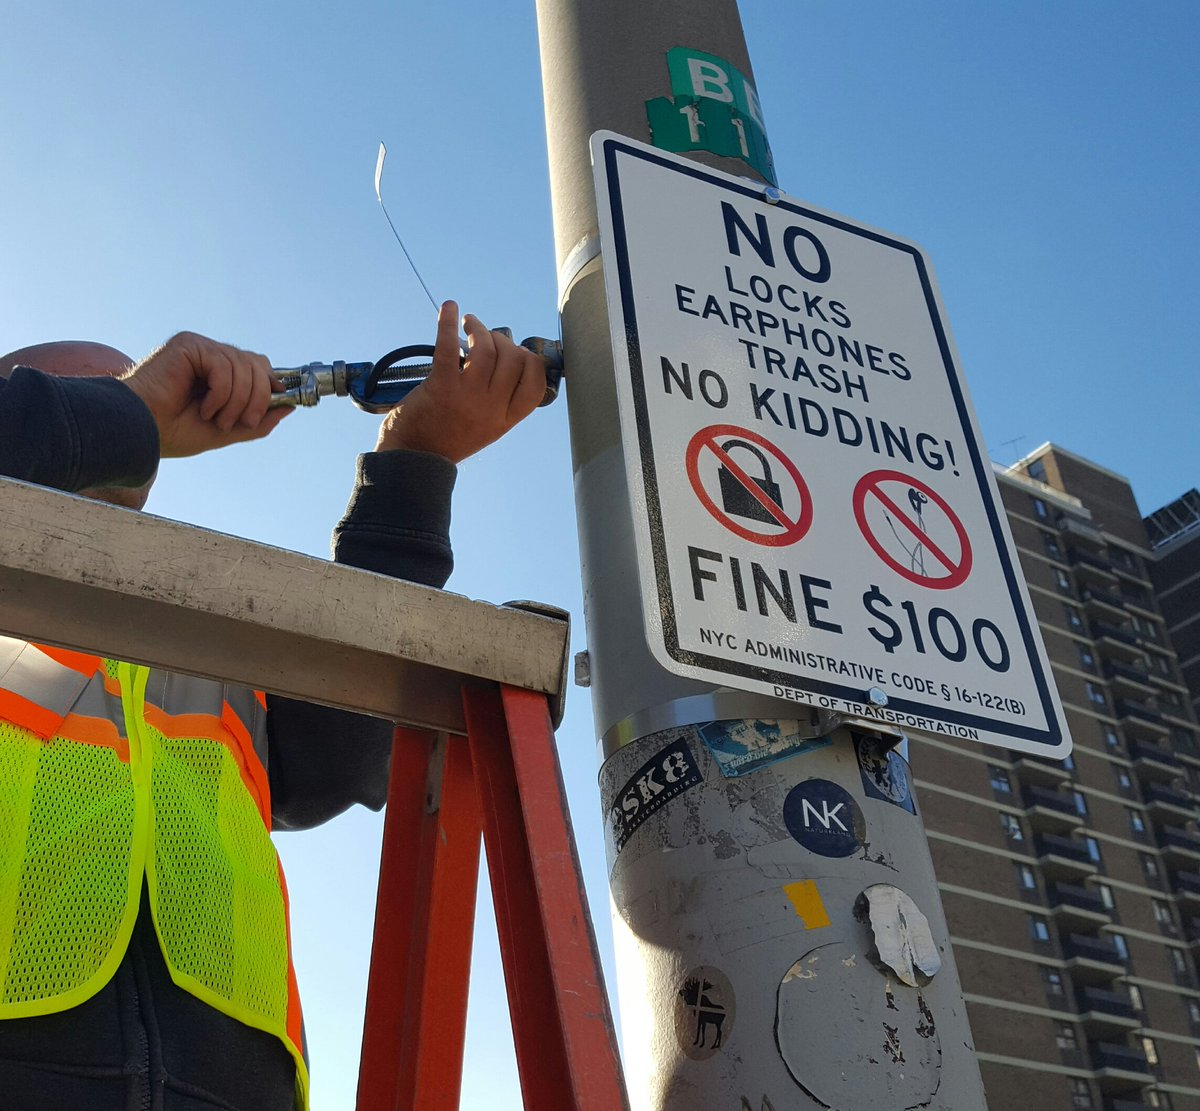 Brooklyn Bridge is no place for 'love locks,' says city officials